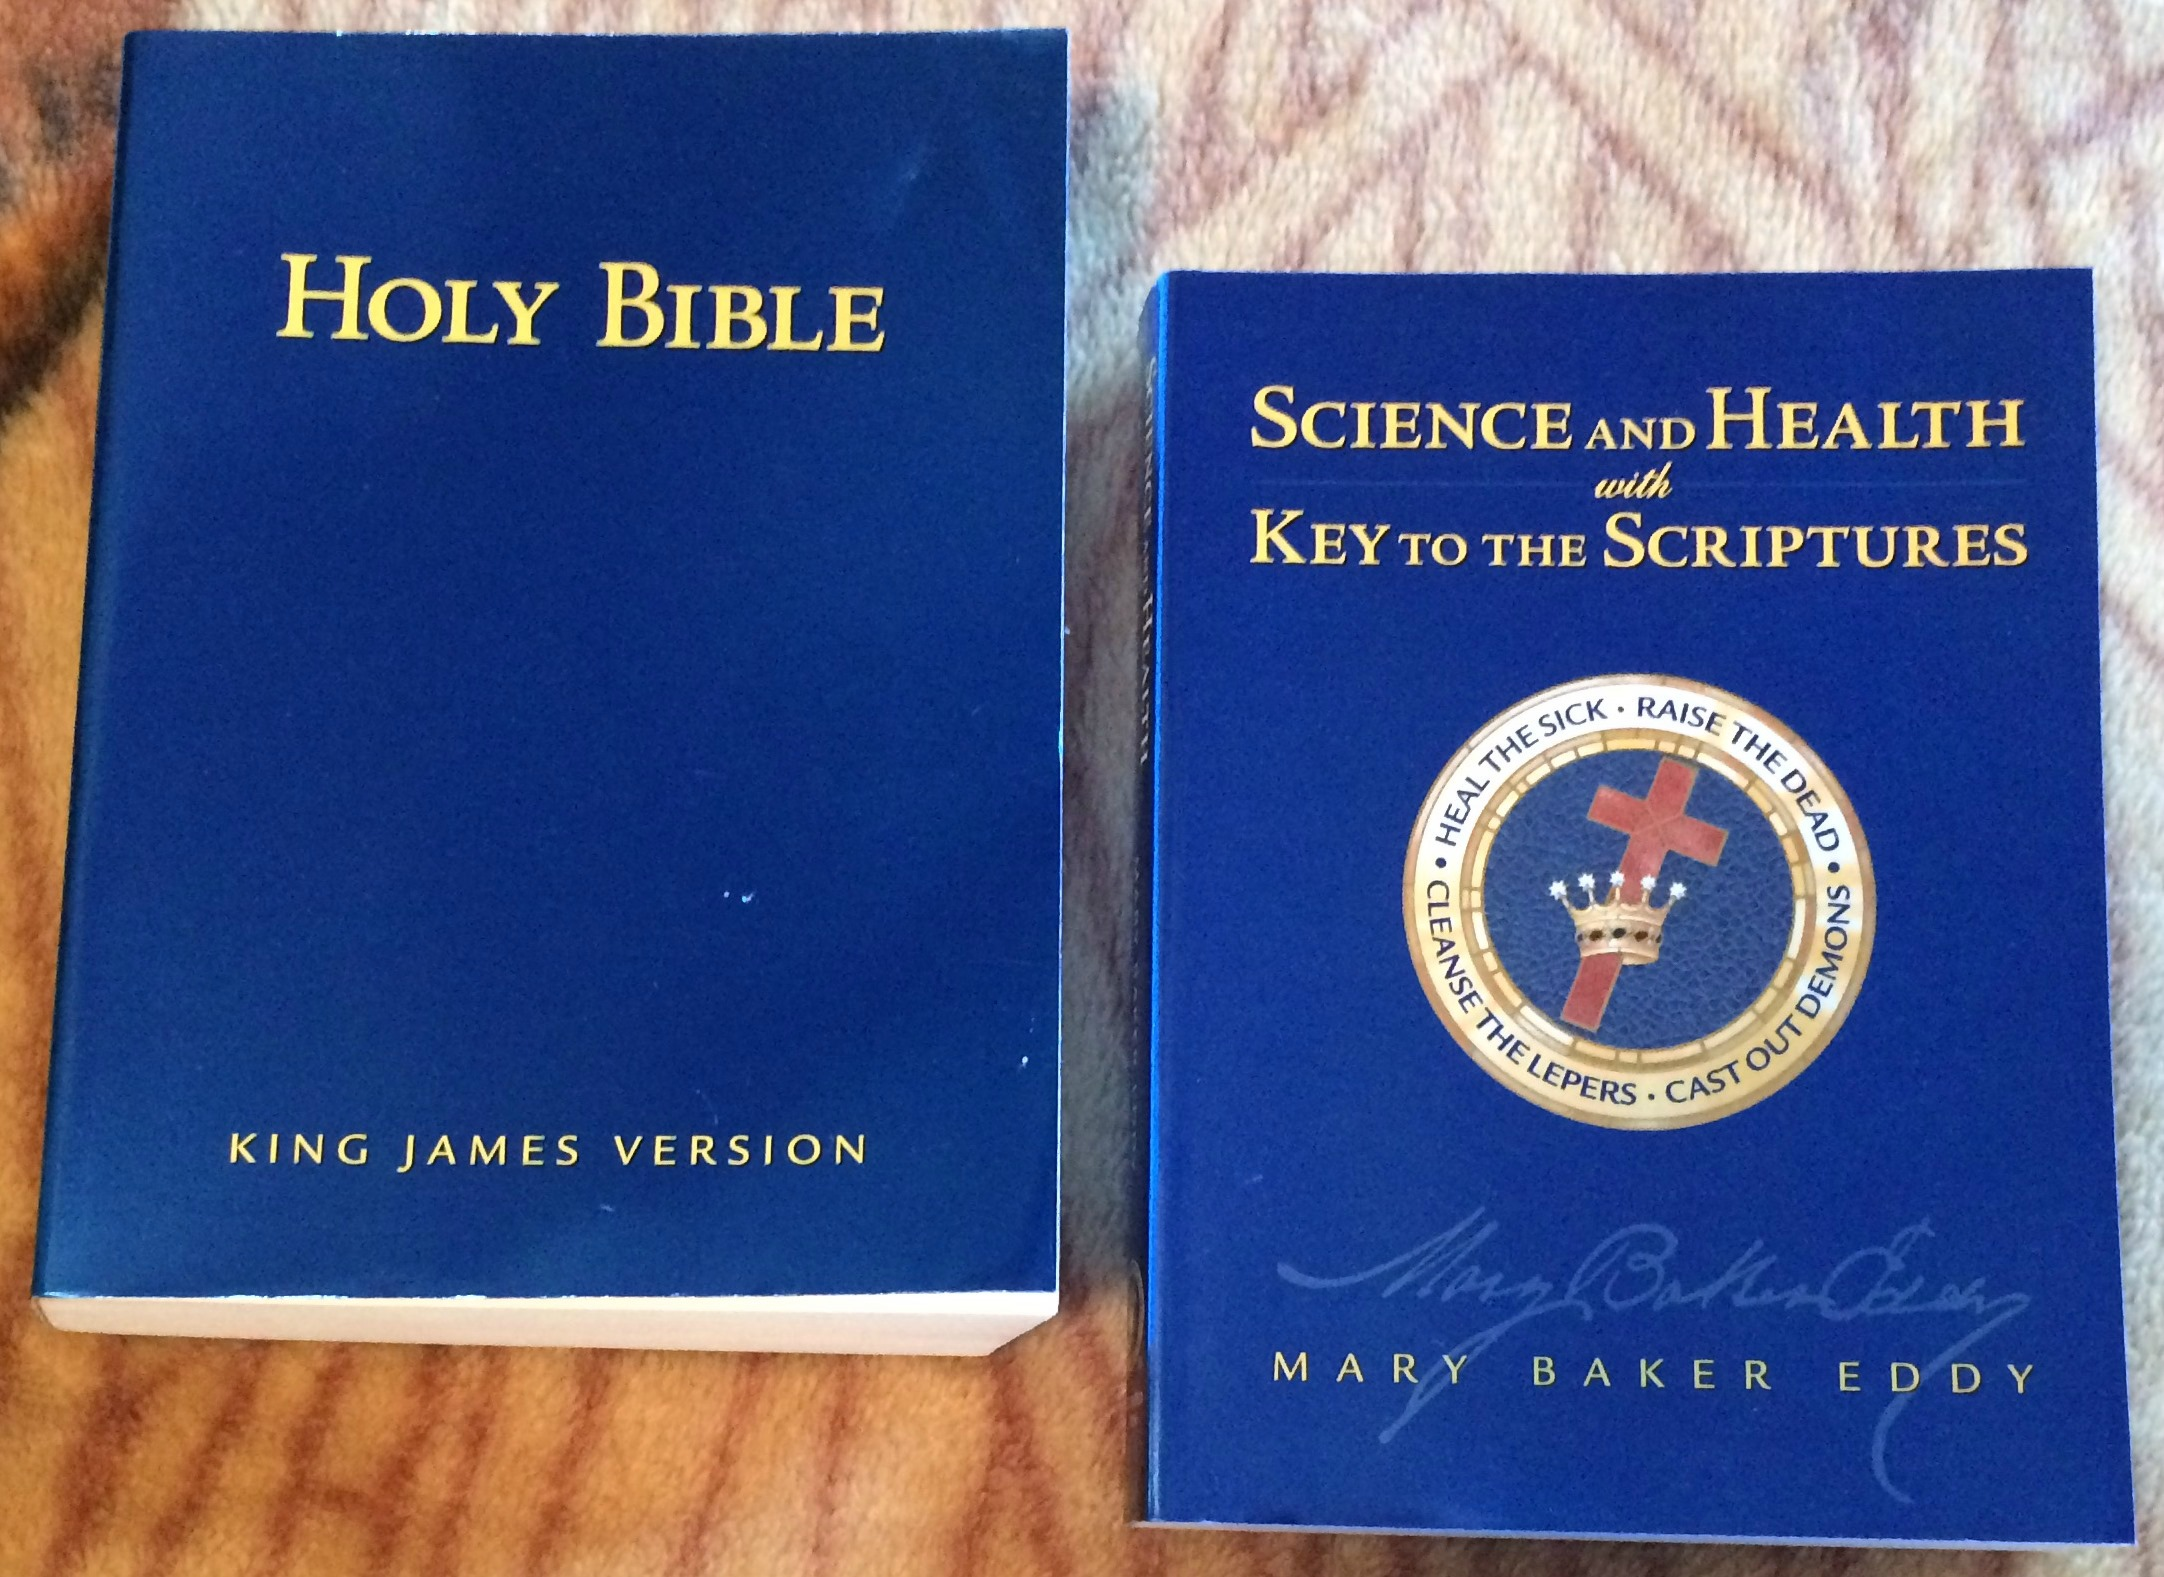 bible and science and health.jpg